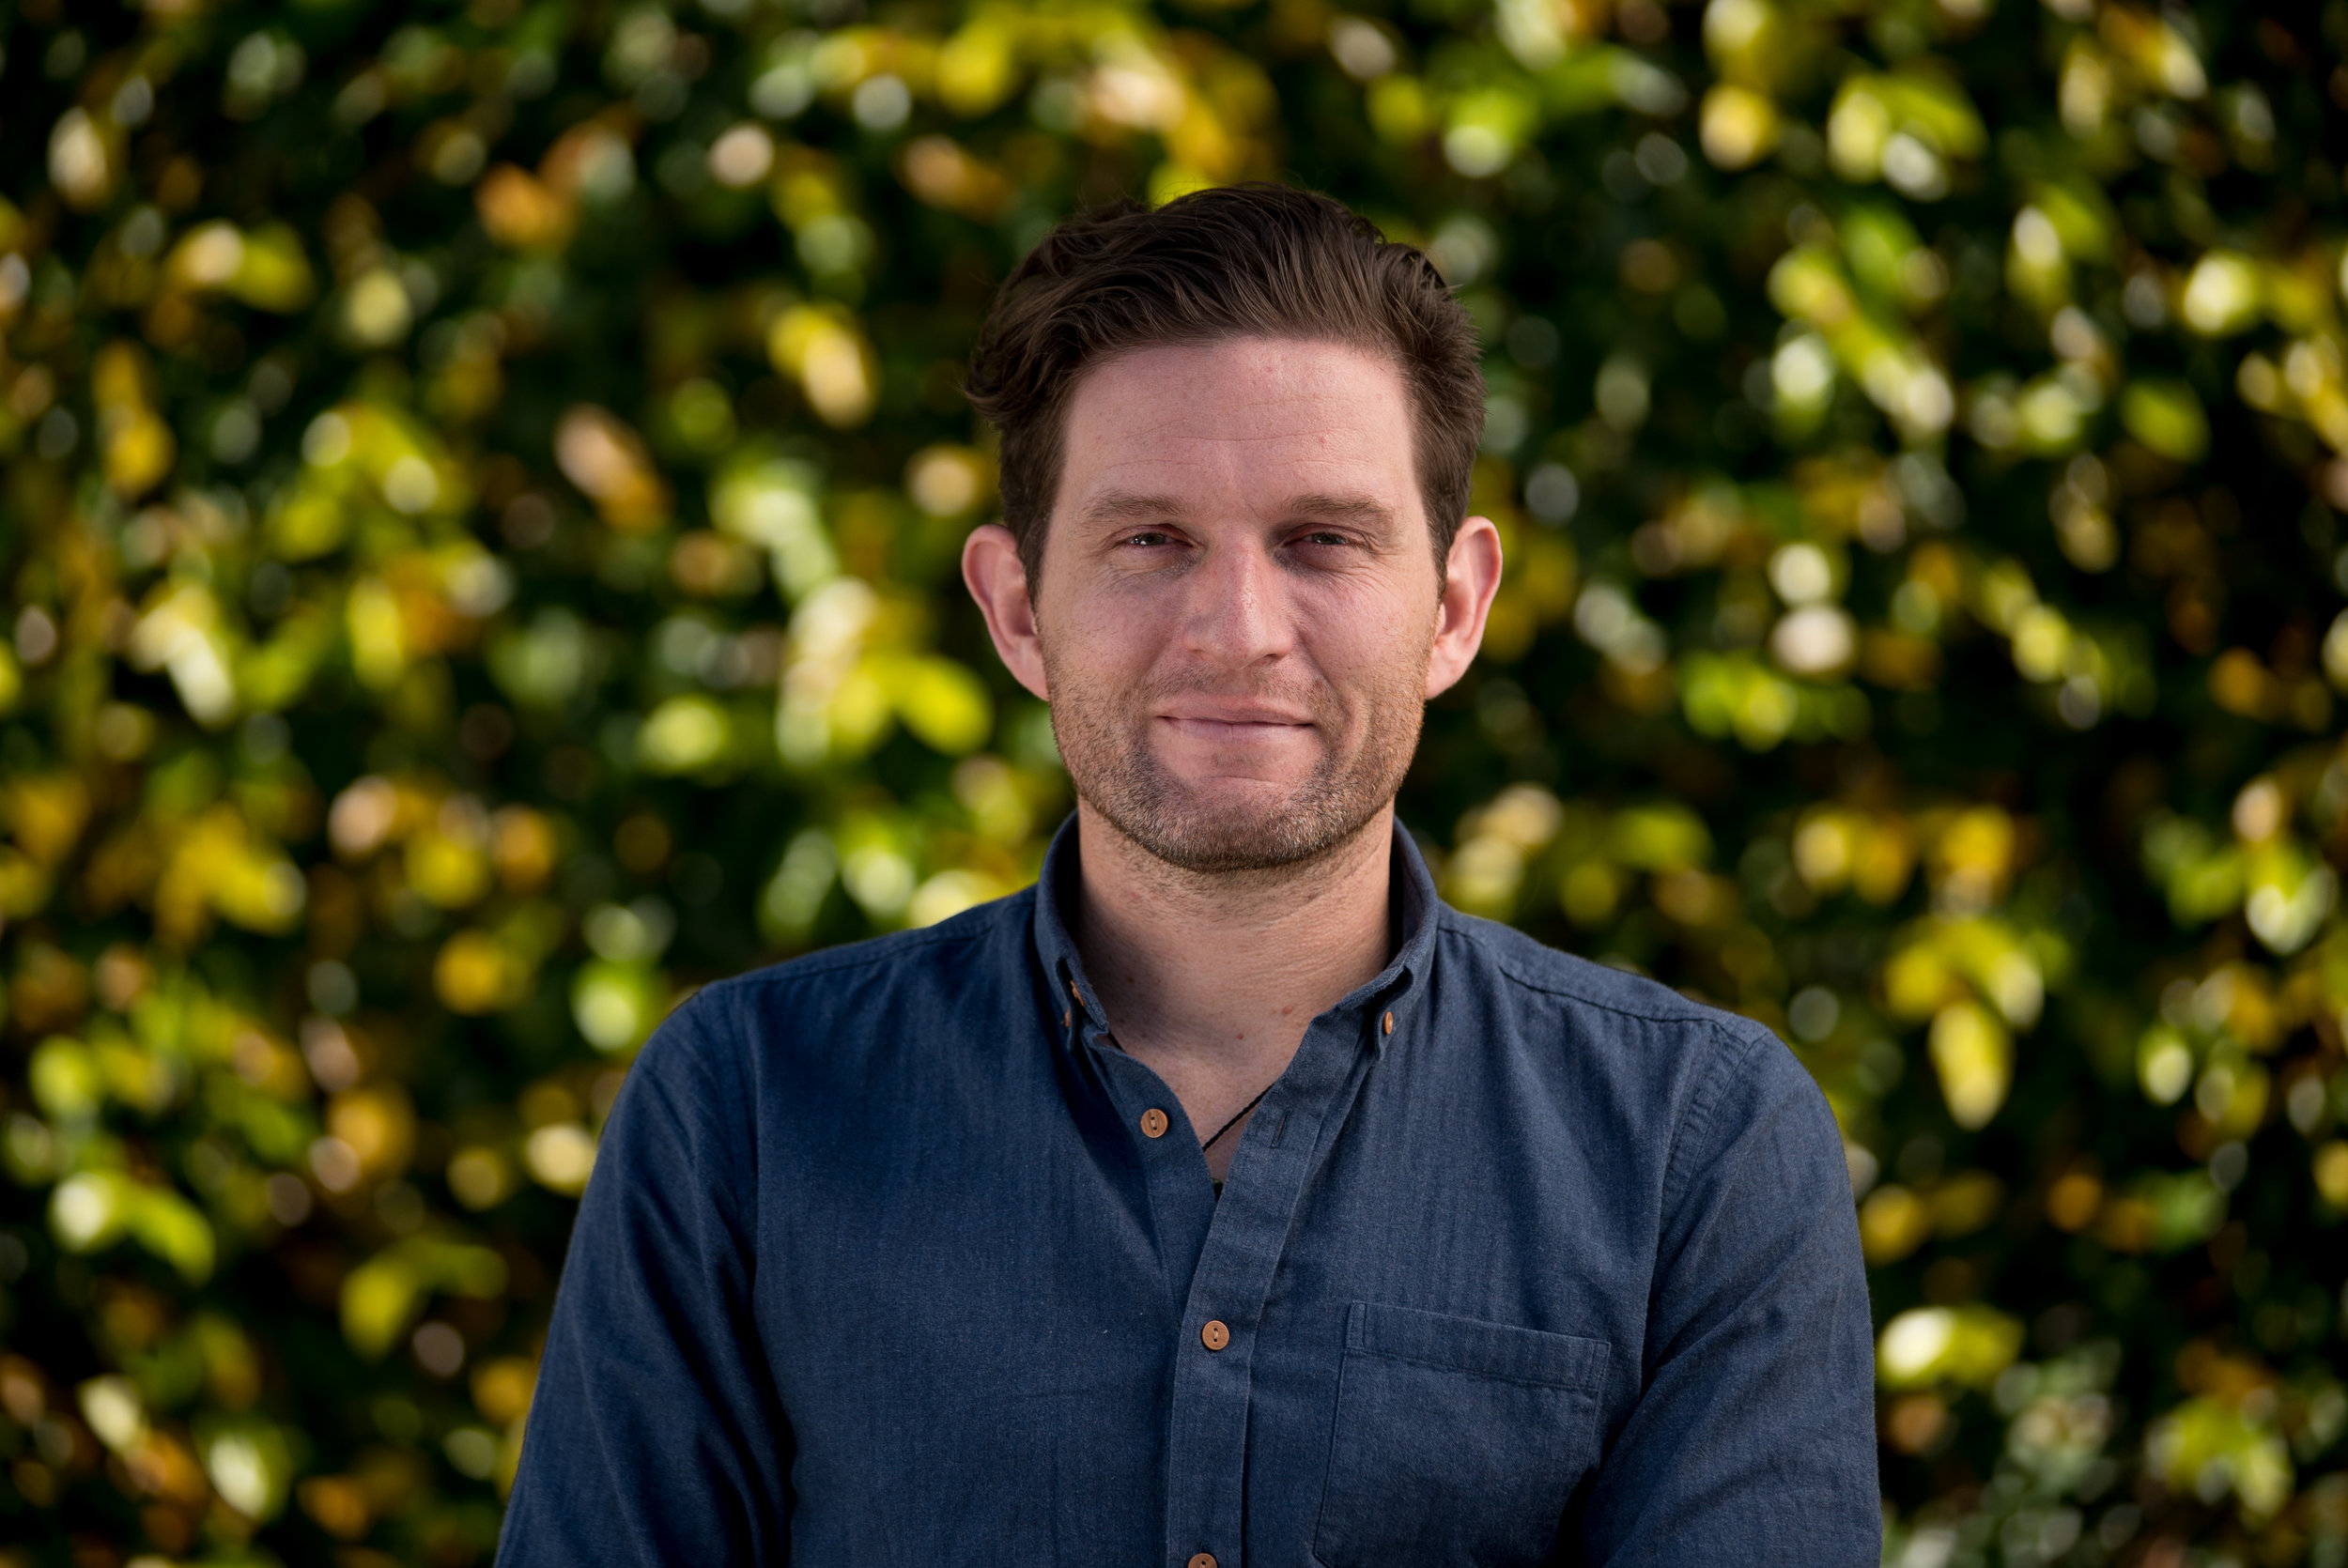 Dan Buckingham    General Manager   Dan has worked across all areas of the business. He started as a researcher & reporter and has since managed both the Post Production & Digital arms of Attitude. He is now focussed on running the business as General Manager.